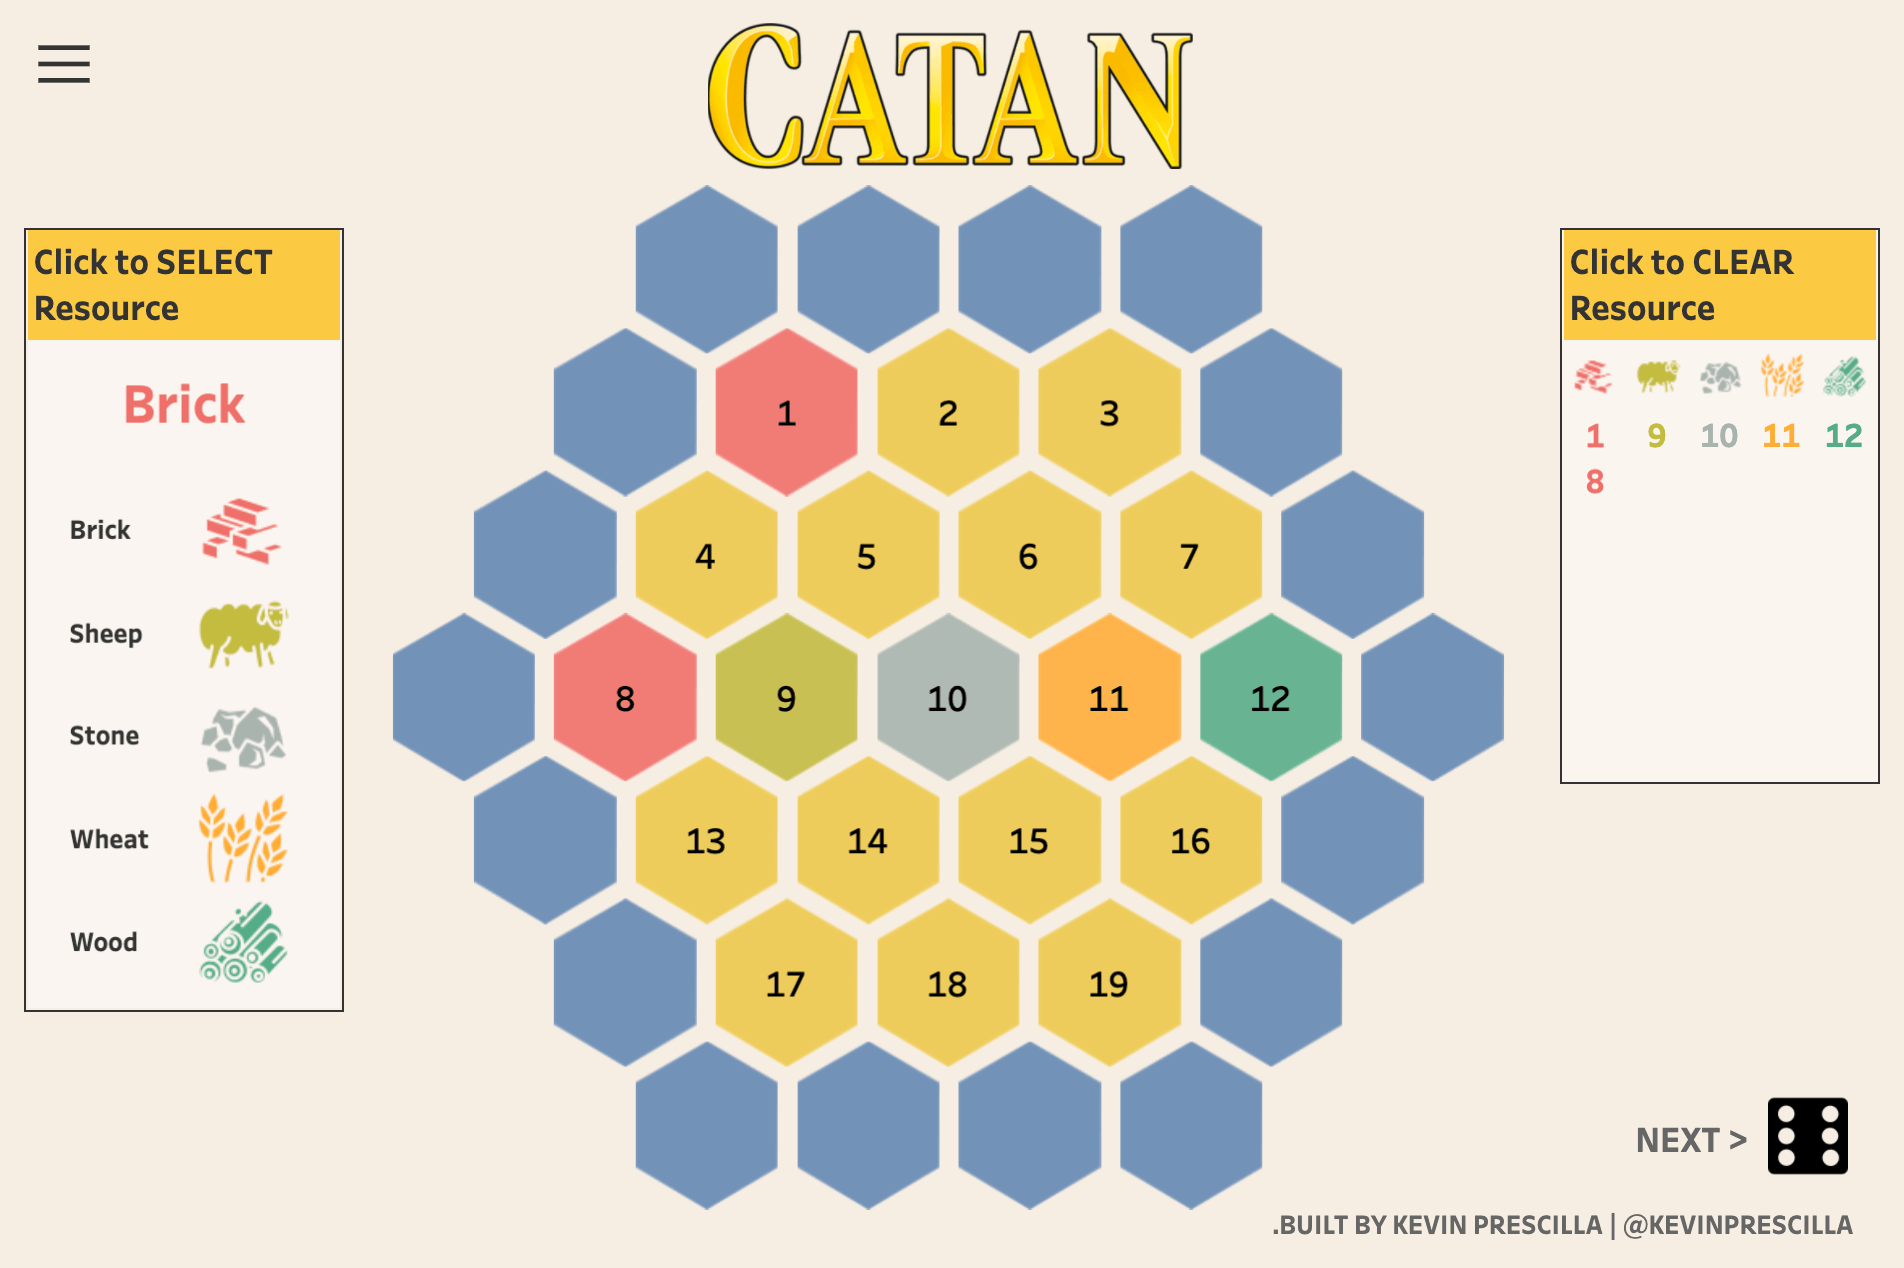 Visualization featuring the boardgame Catan